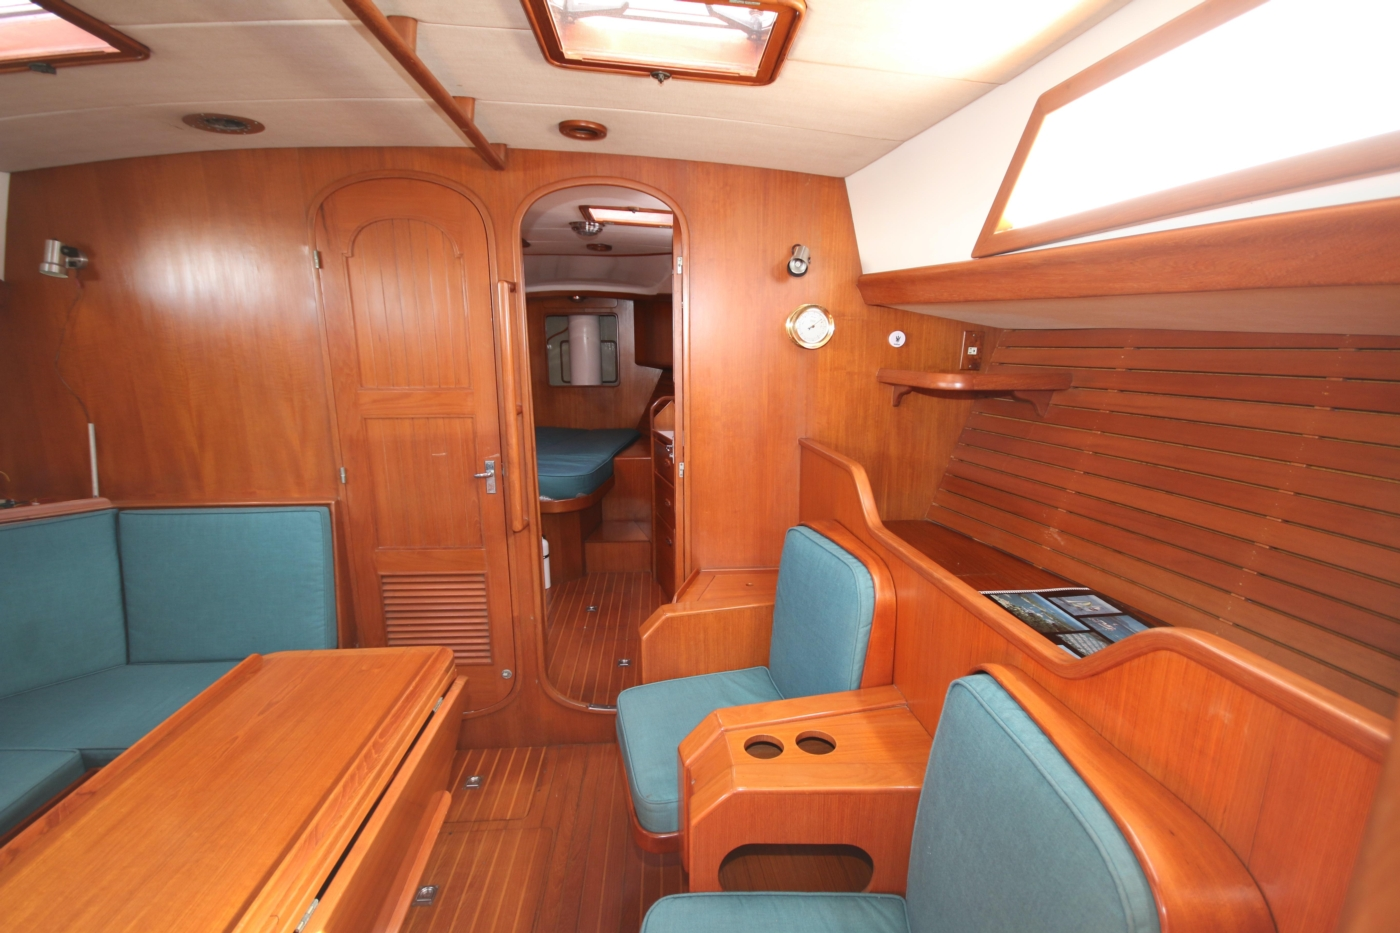 1996 Tanton 45 Offshore, Salon forward view